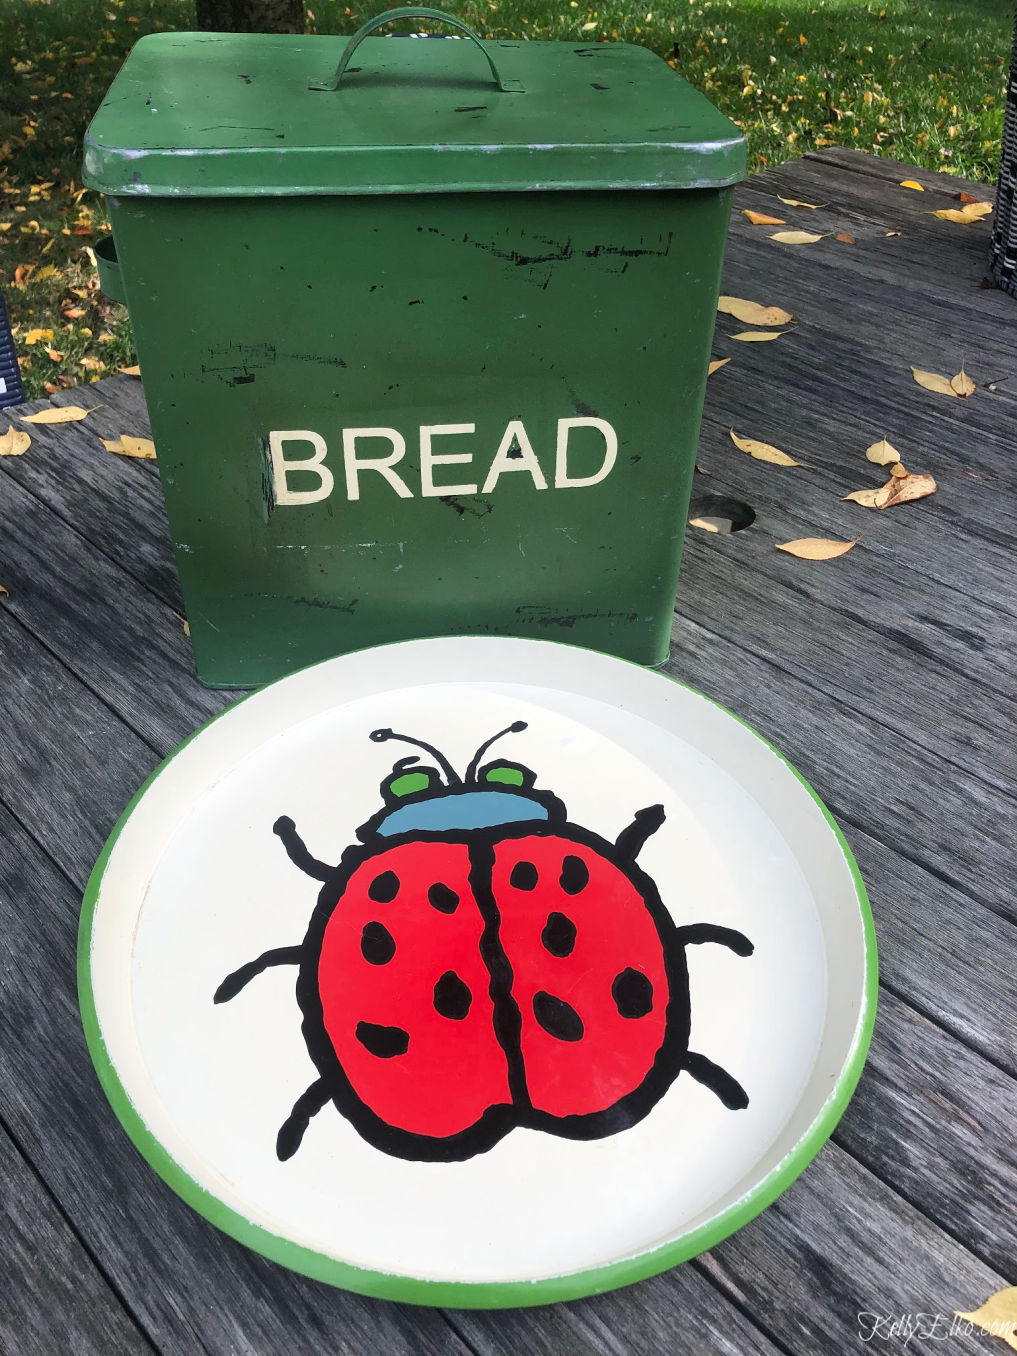 Thrifting Diaries October Haul - love the green enamel bread box and vintage Ross Havers ladybug tray kellyelko.com #vintage #vintagedecor #breadbox #thrifting #thriftstore #midcentury